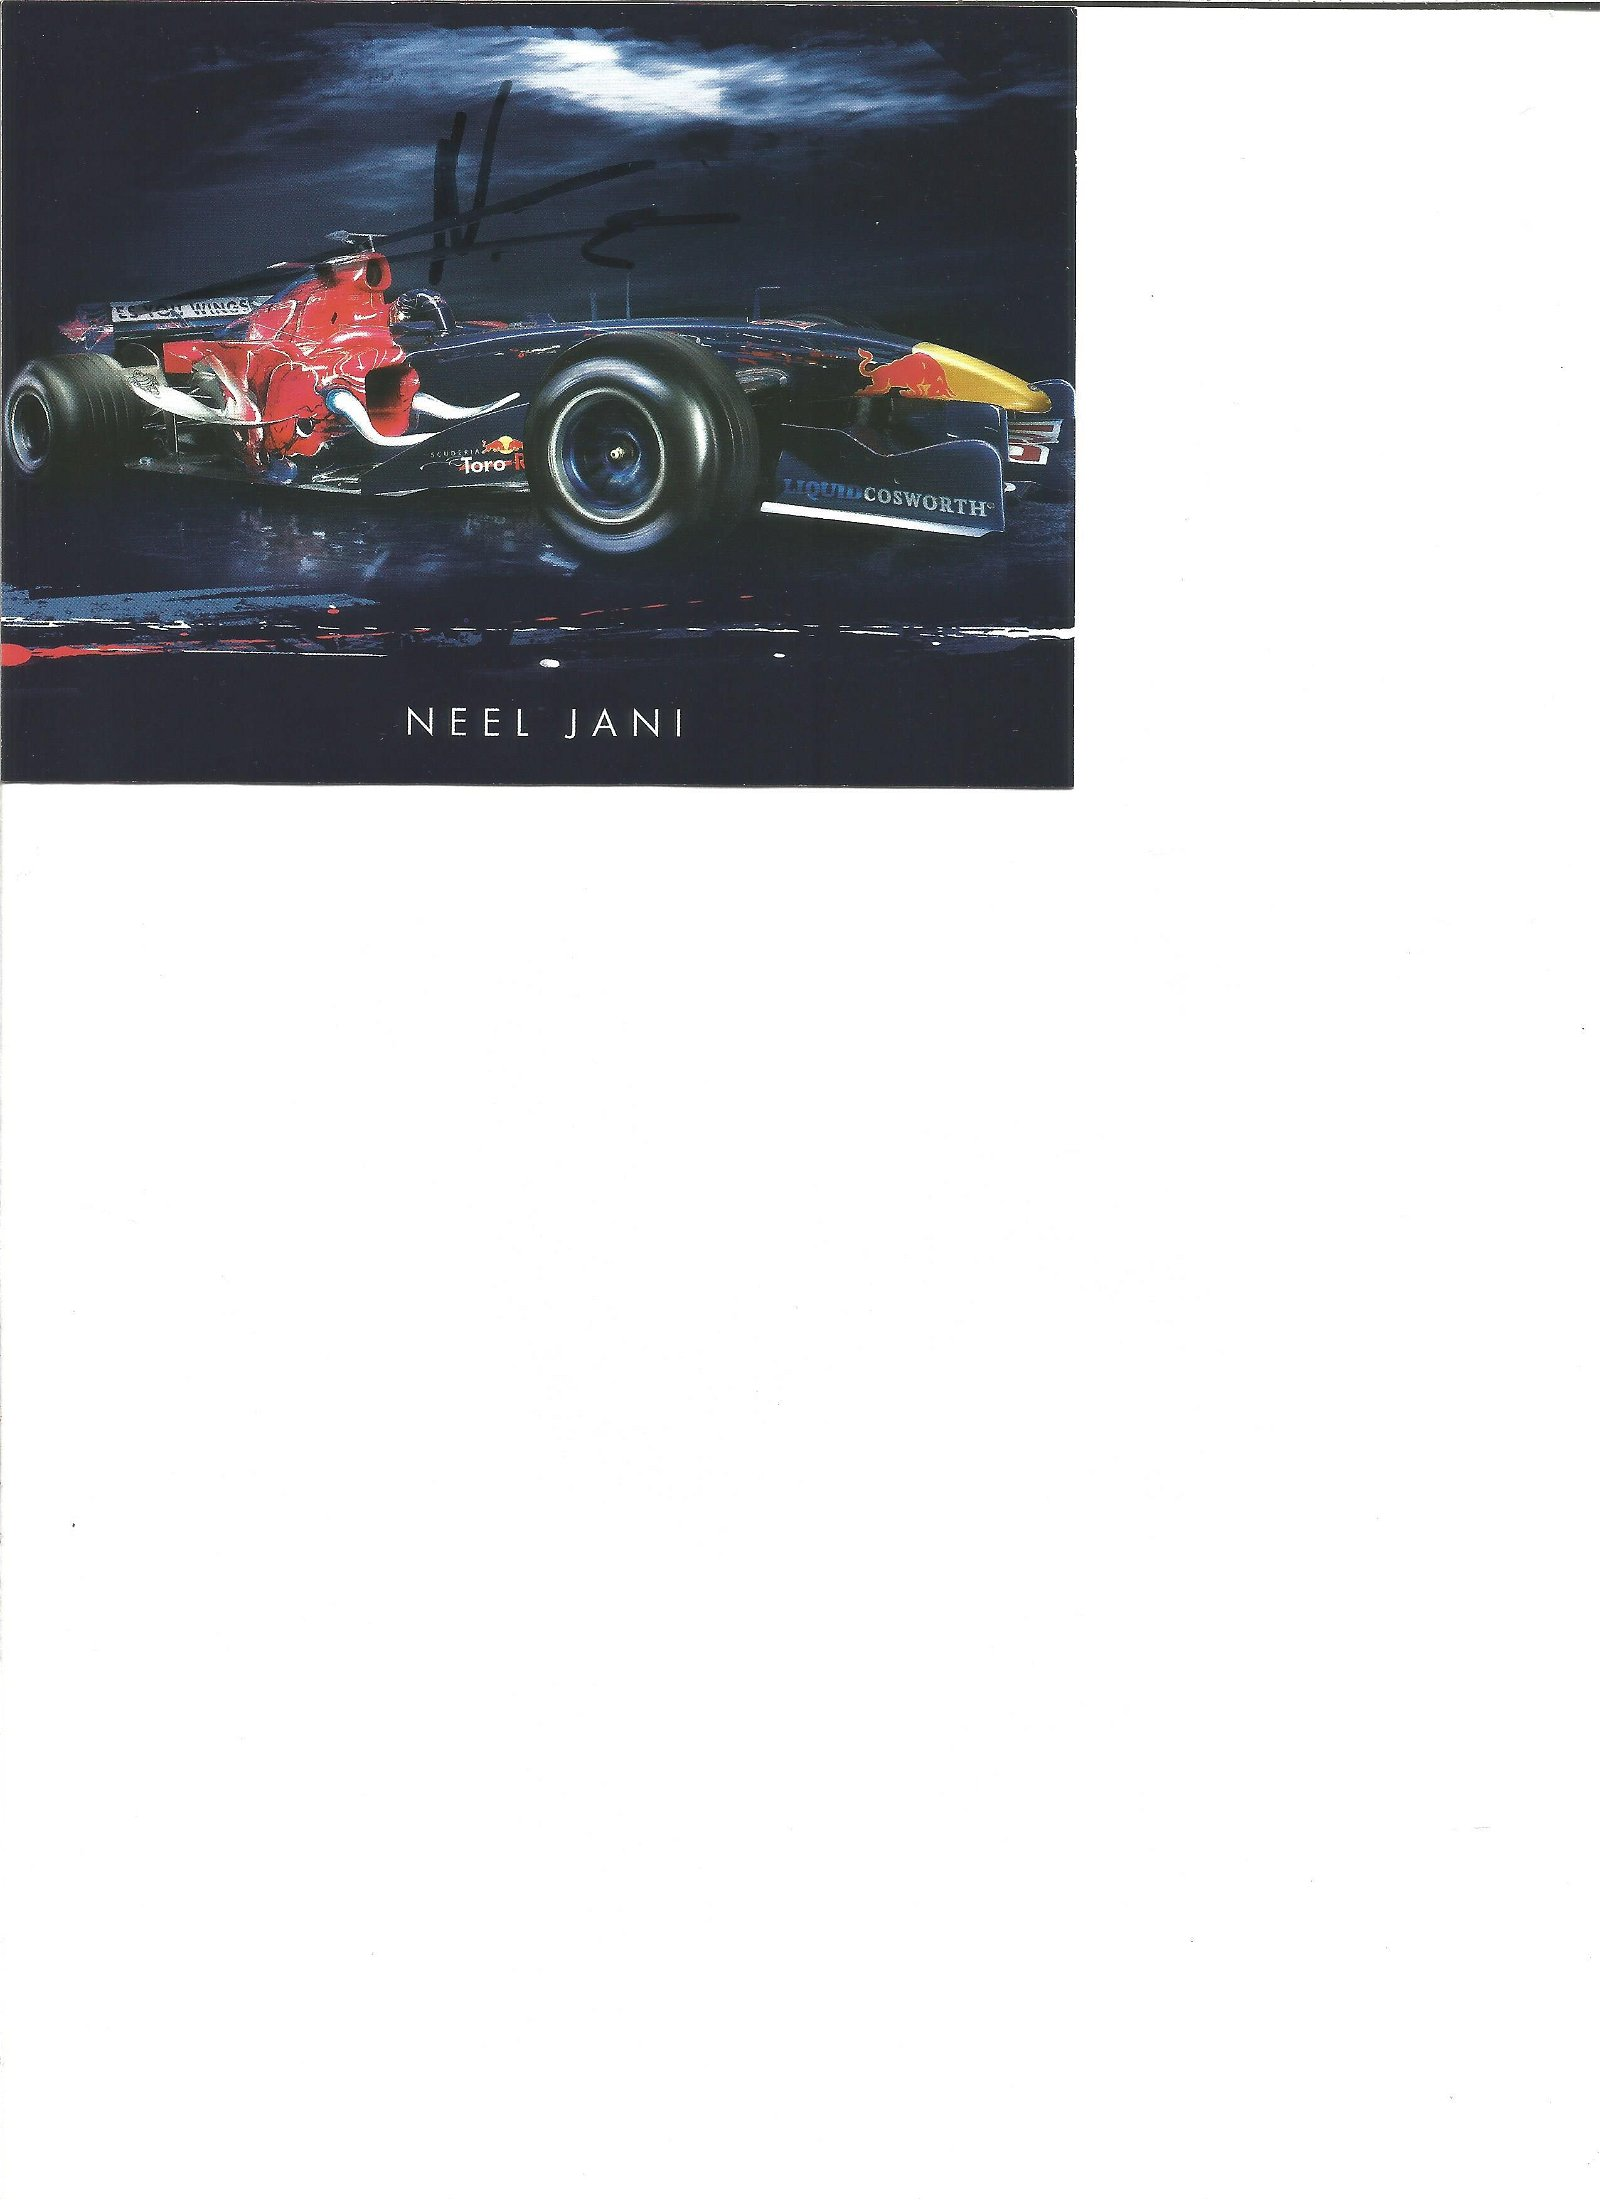 Neel Jani signed 6x4 colour promo card. Good Condition.